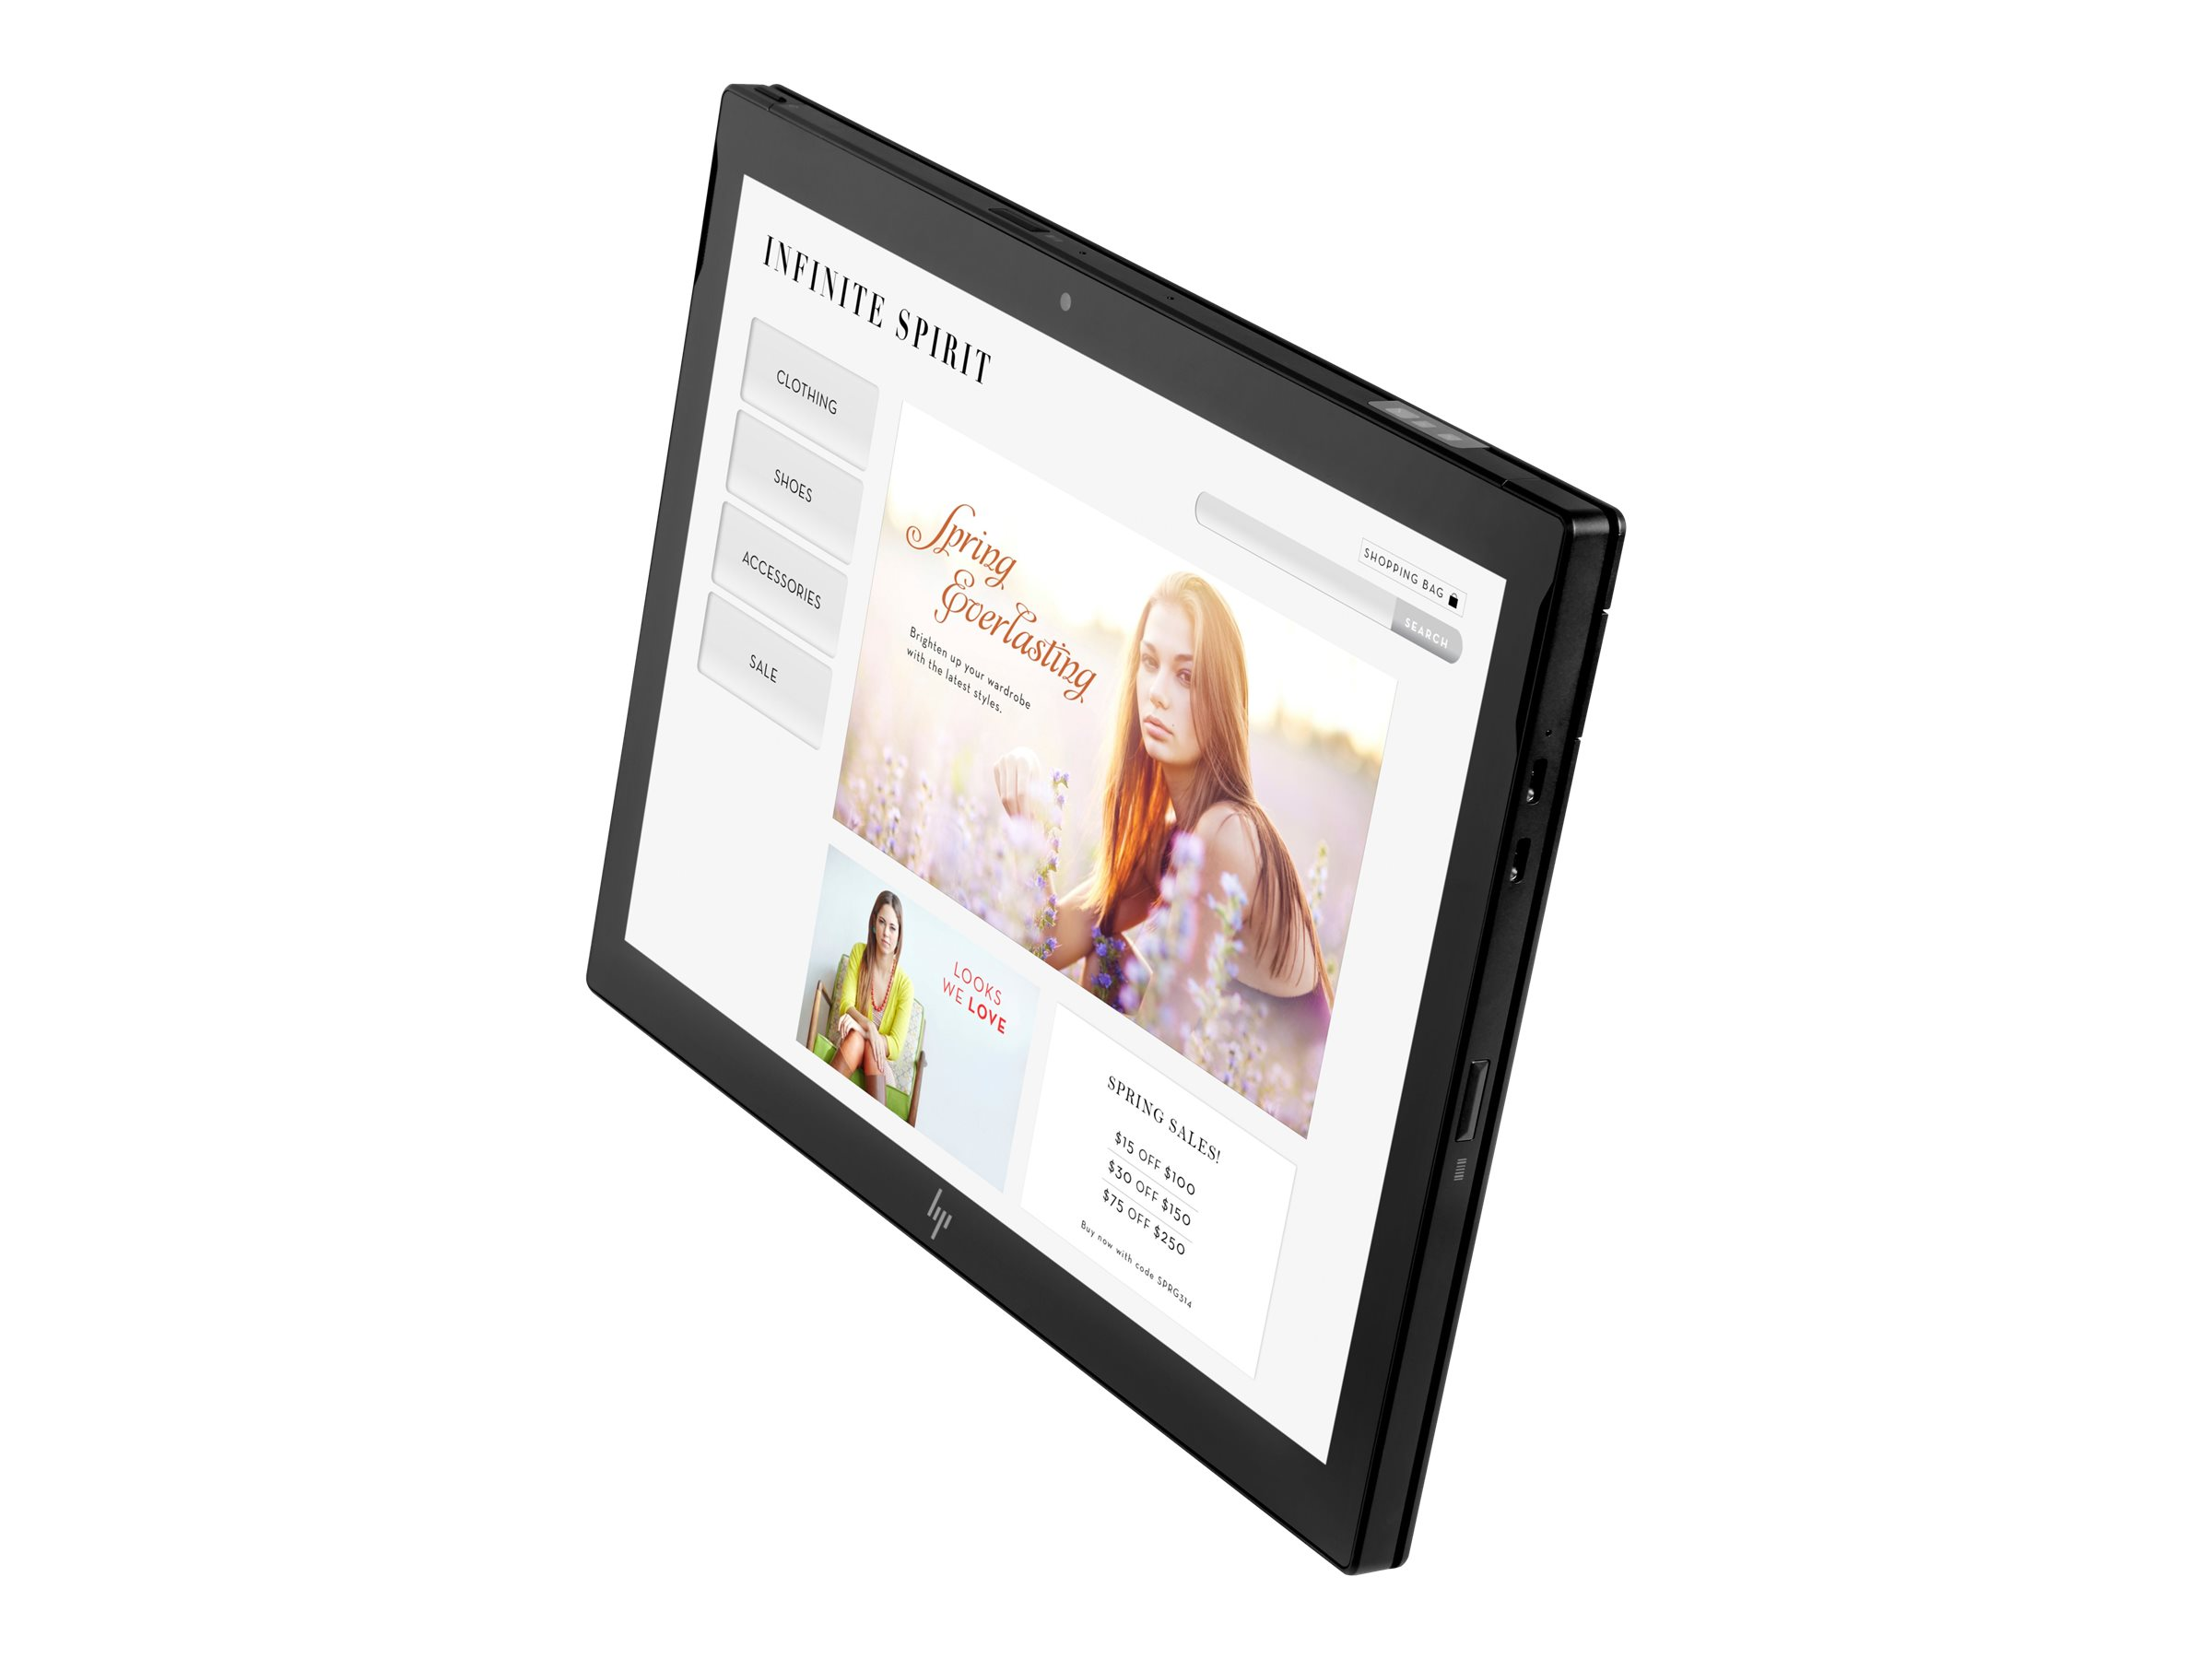 HP Engage Go Mobile - Tablet - Core m3 7Y30 / 1 GHz - Win 10 Pro 64-Bit - 4 GB RAM - 128 GB SSD TLC